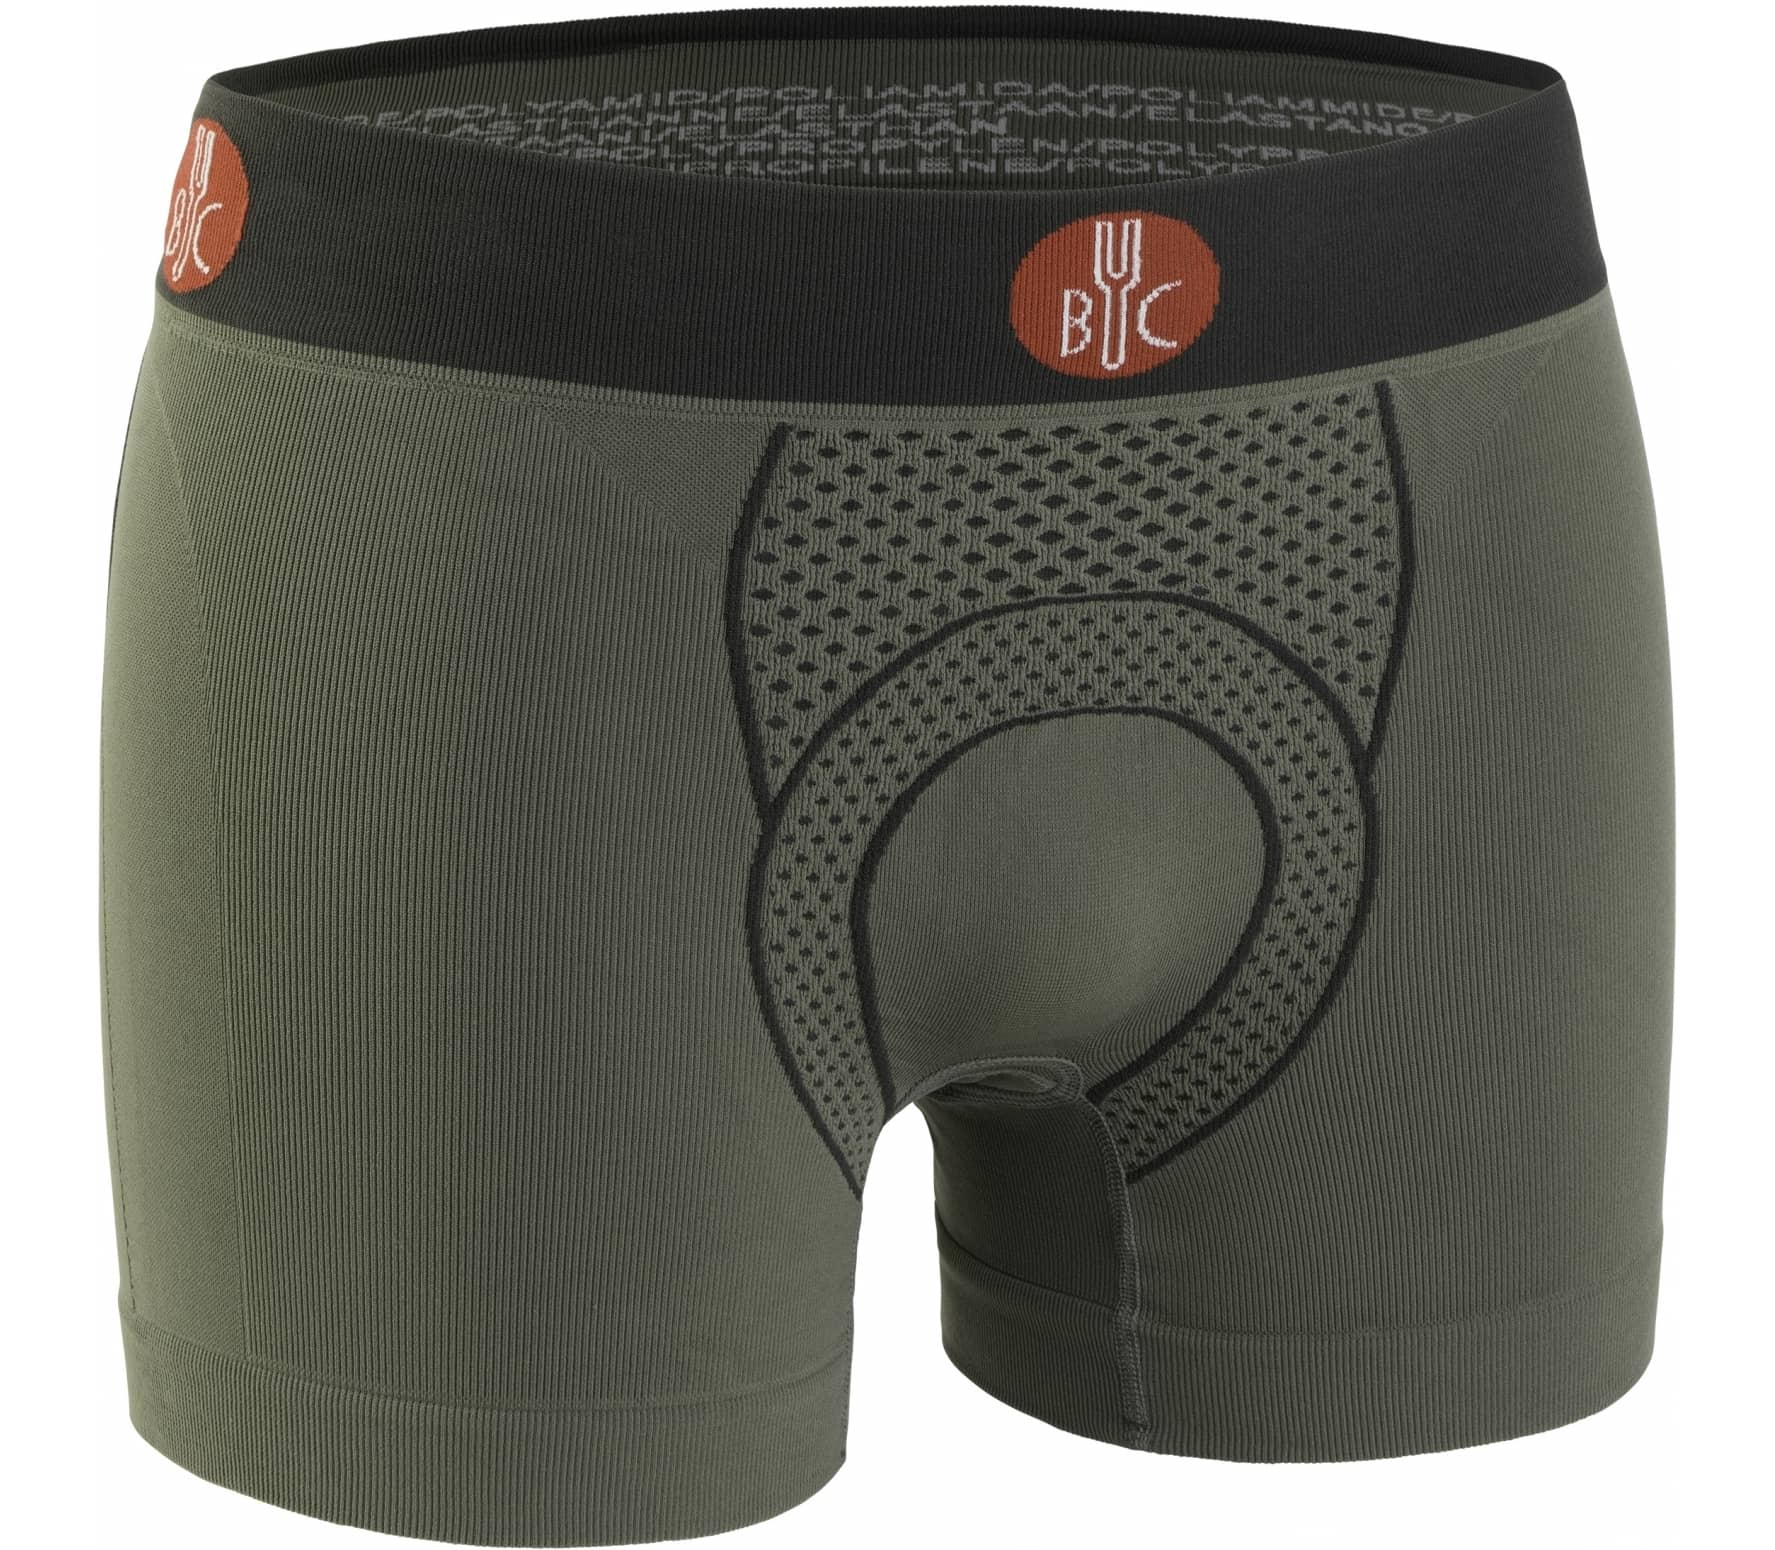 For.Bicy - Urban Life Herren Bike Boxer (grün/anthrazit)